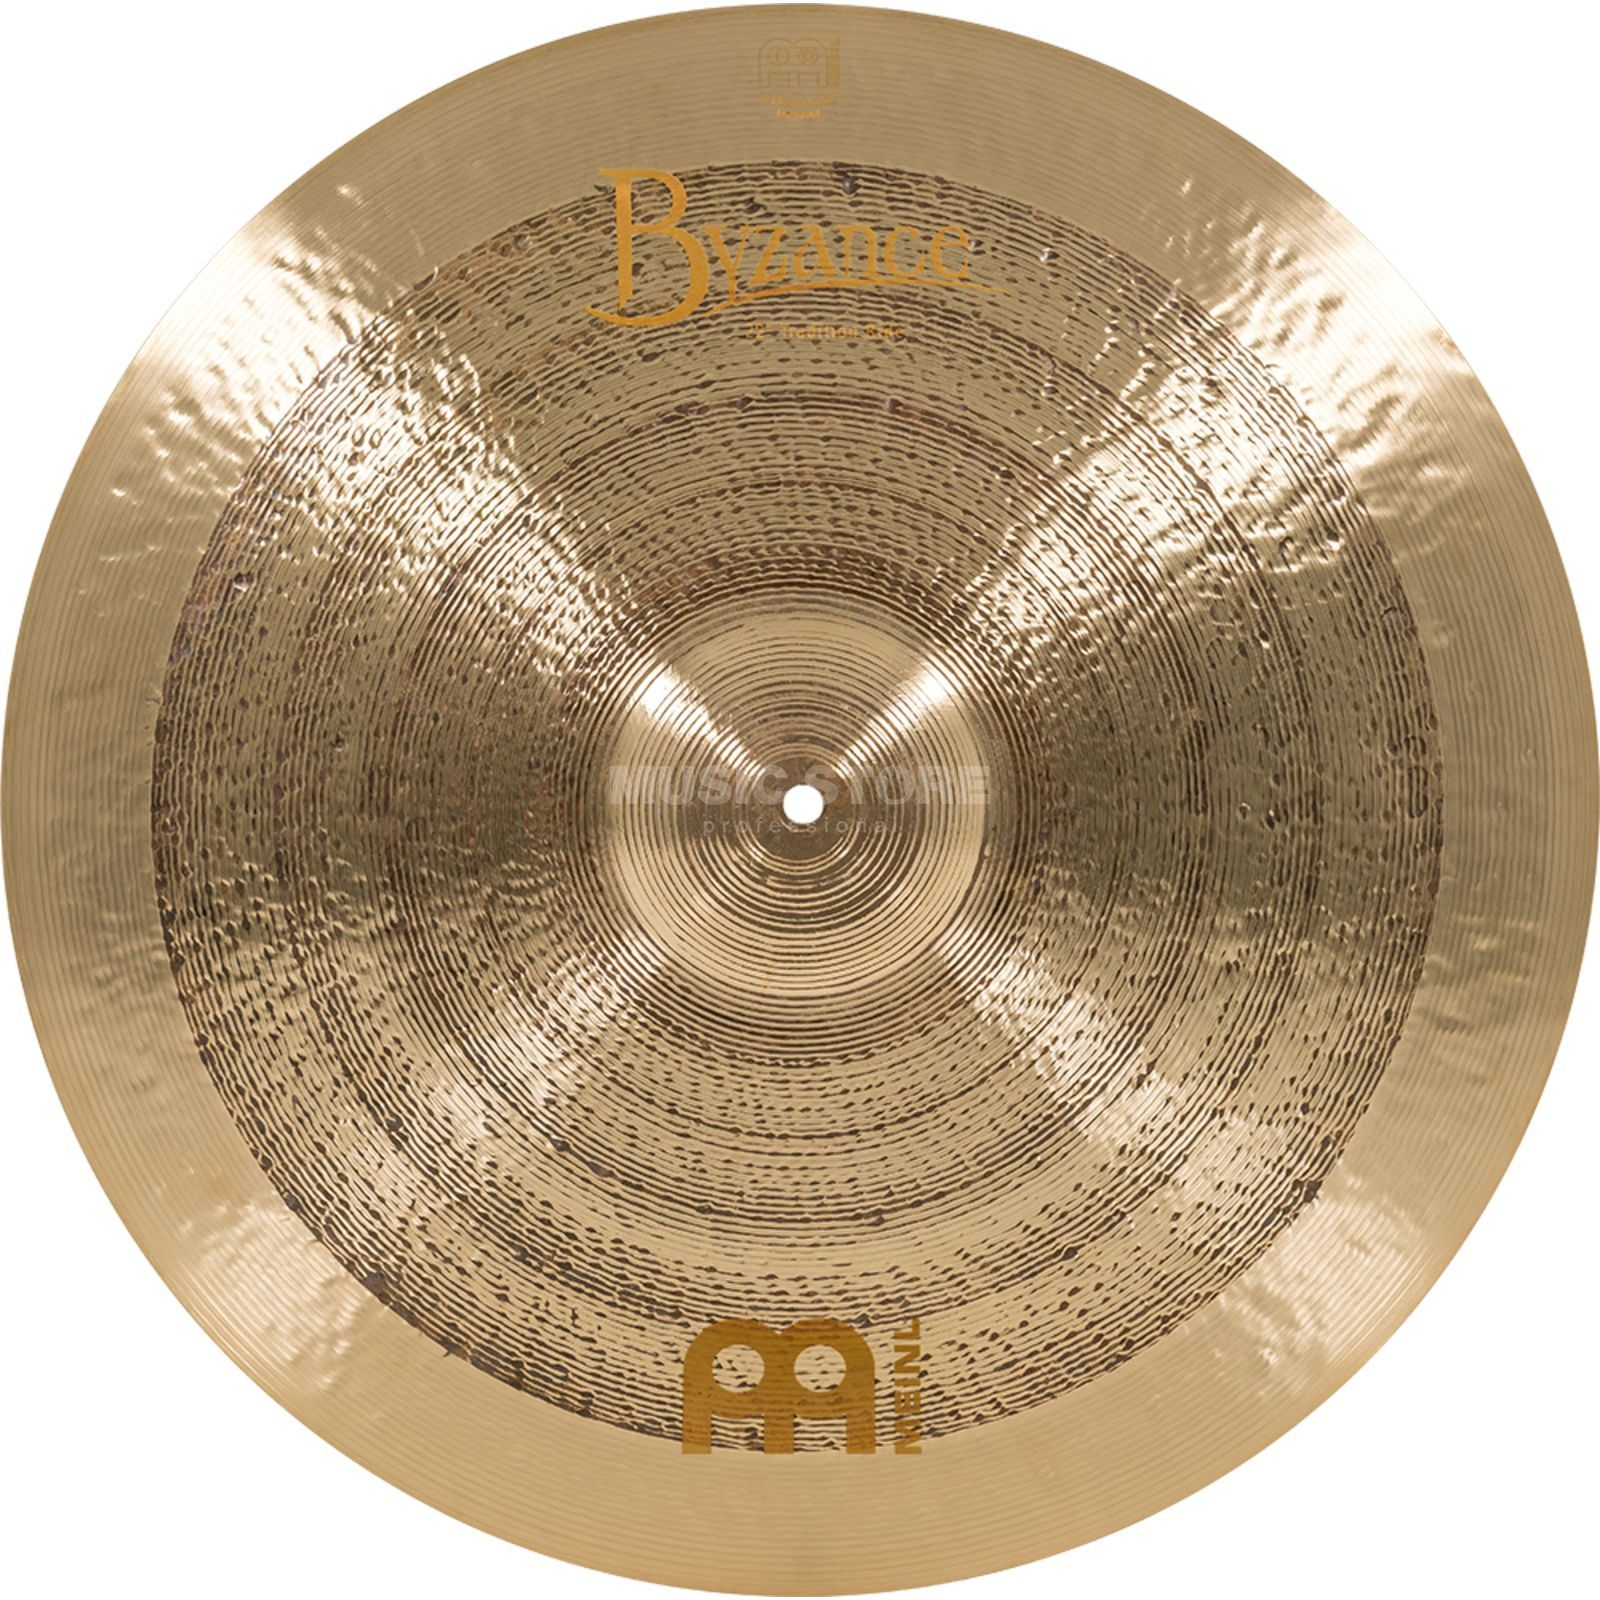 "Meinl Byzance Tradition Ride 22"", B22TRR, Jazz Finish Produktbild"